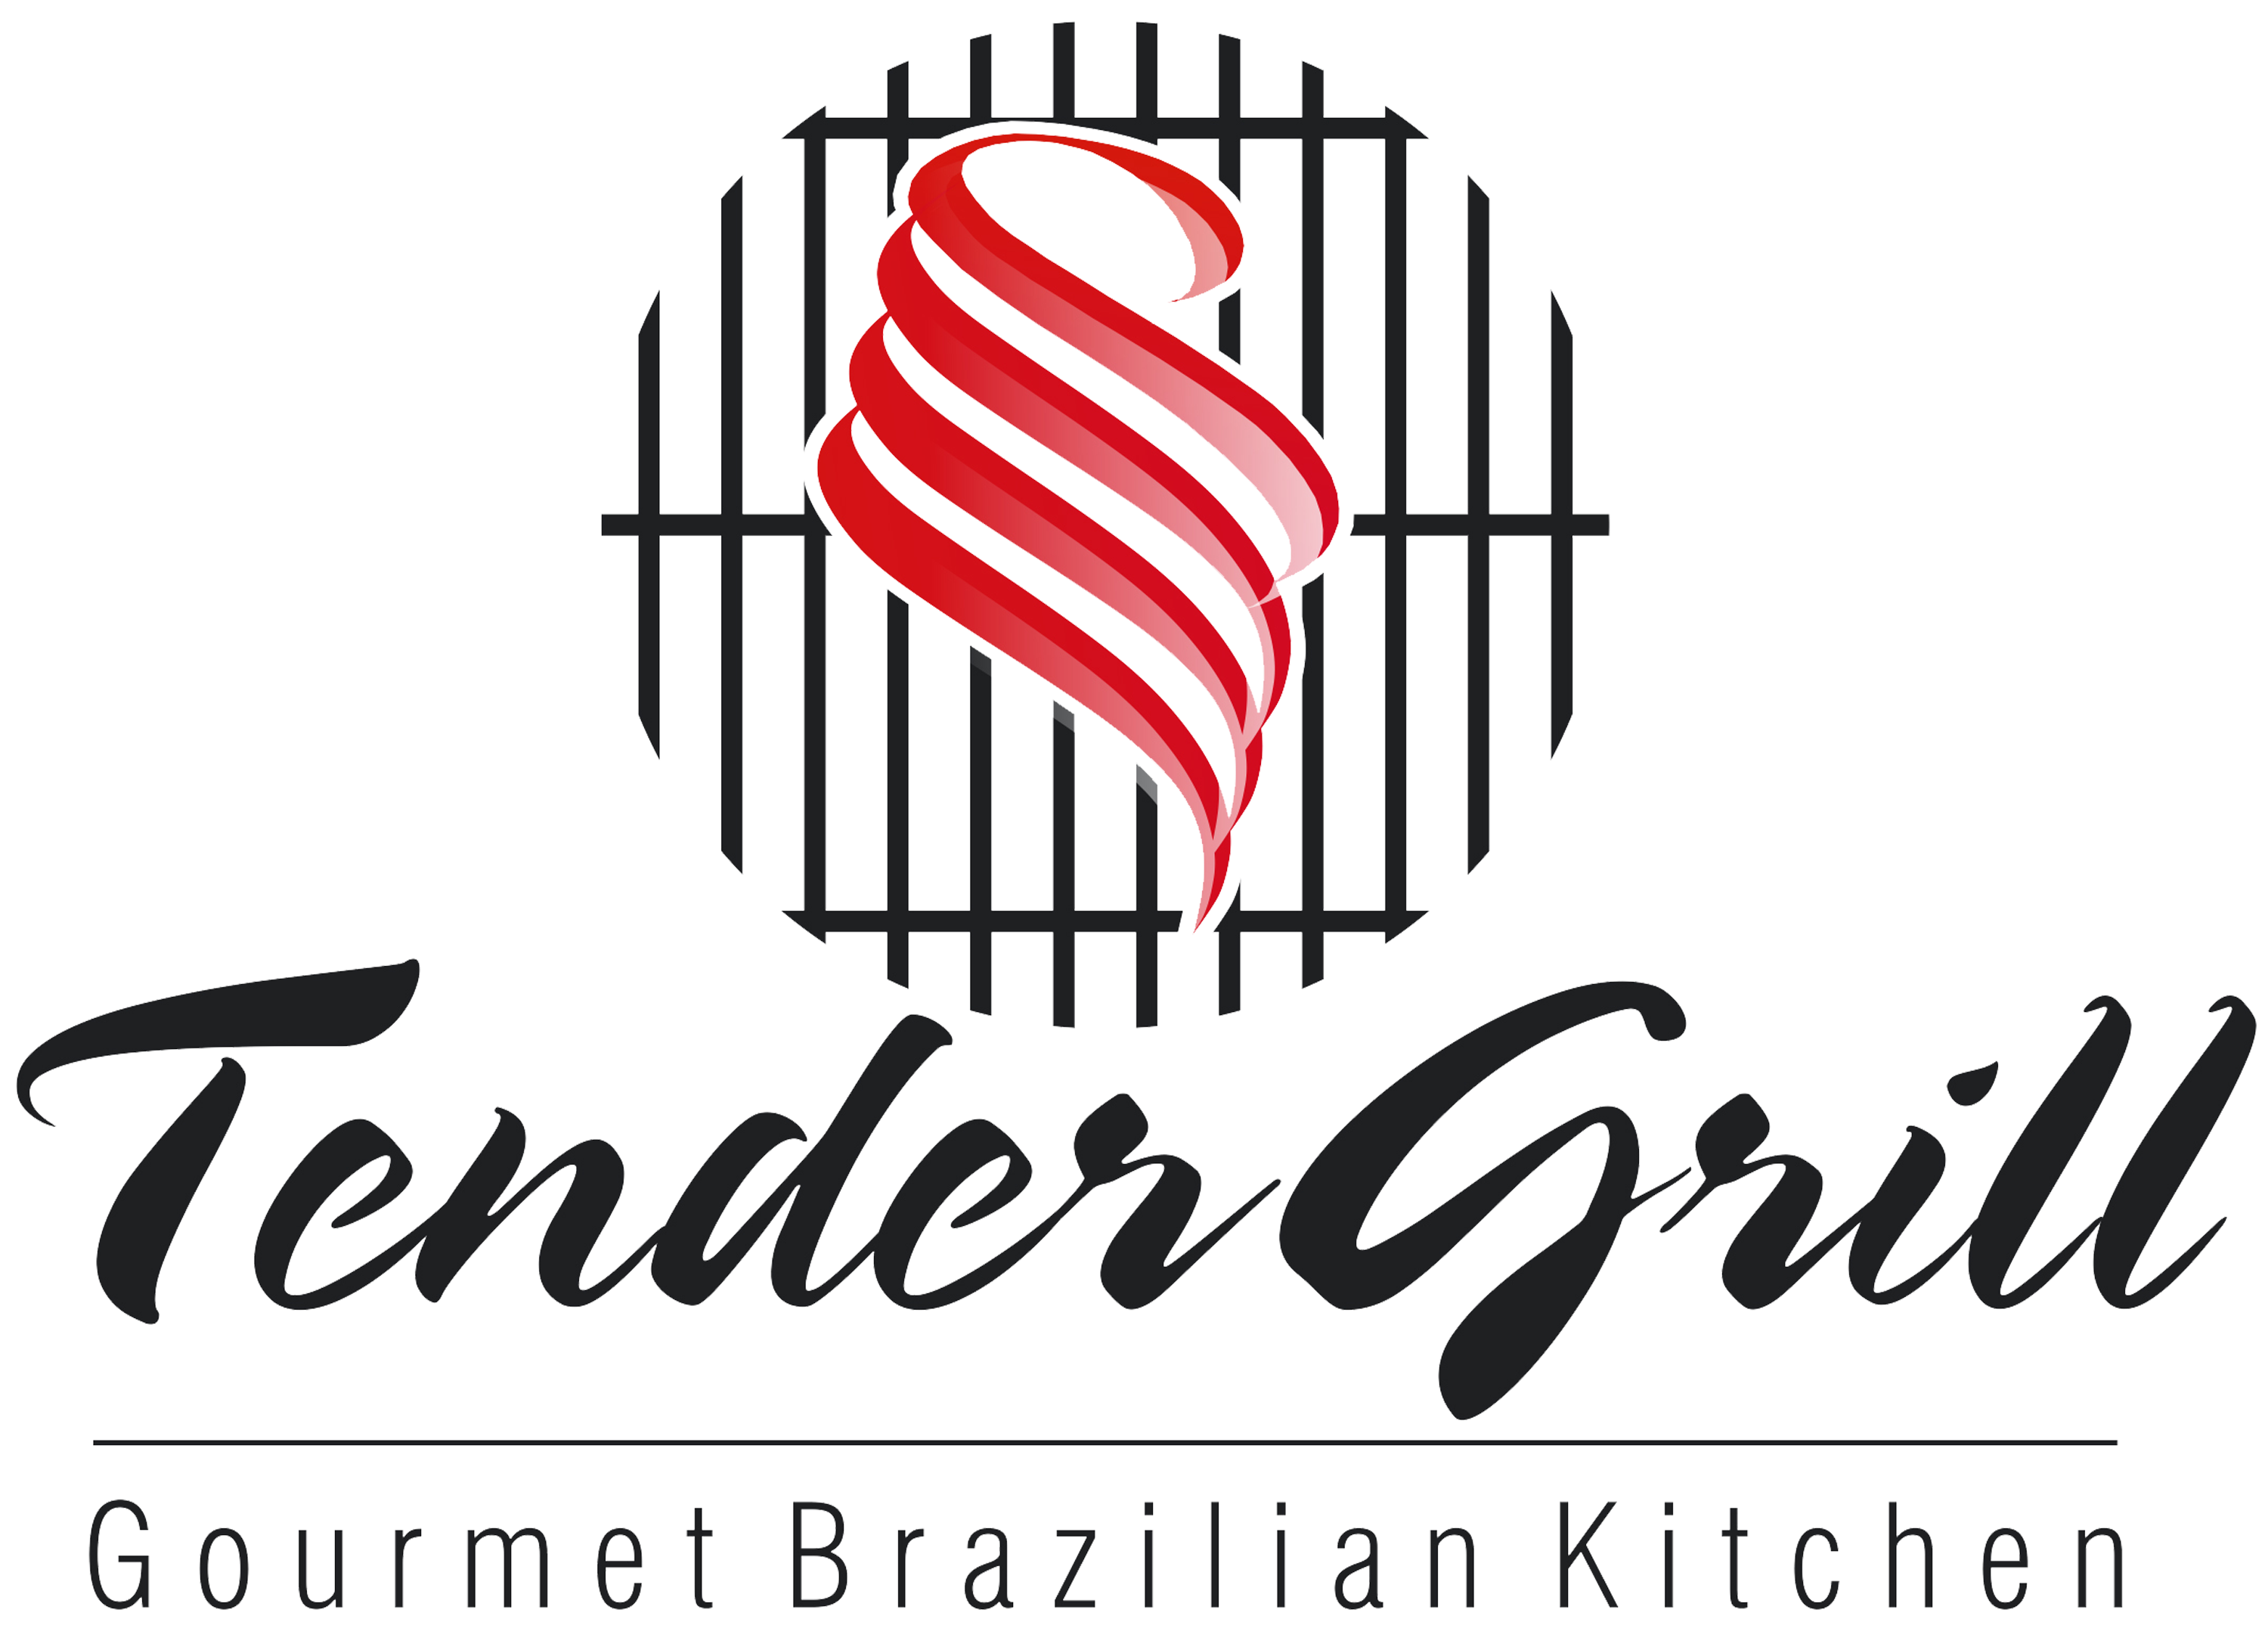 Tender Grill Gourmet Brazilian Kitchen Home